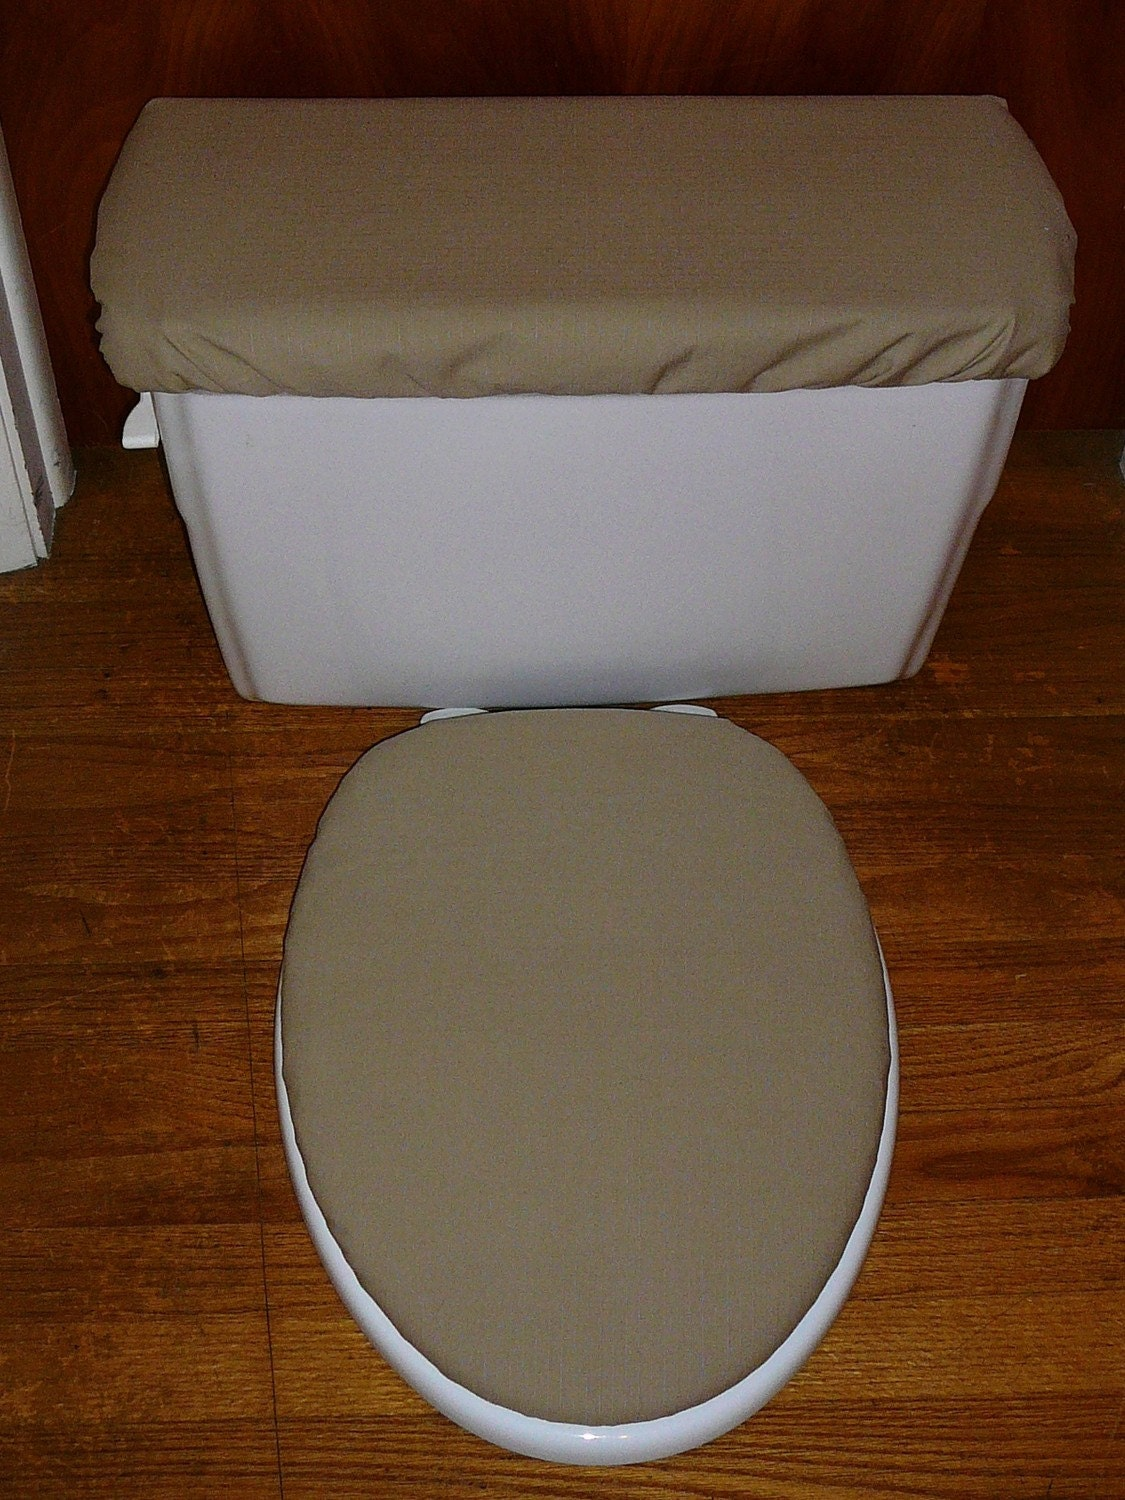 Tan Beige Toilet Seat Cover And Tank Lid Cover Set